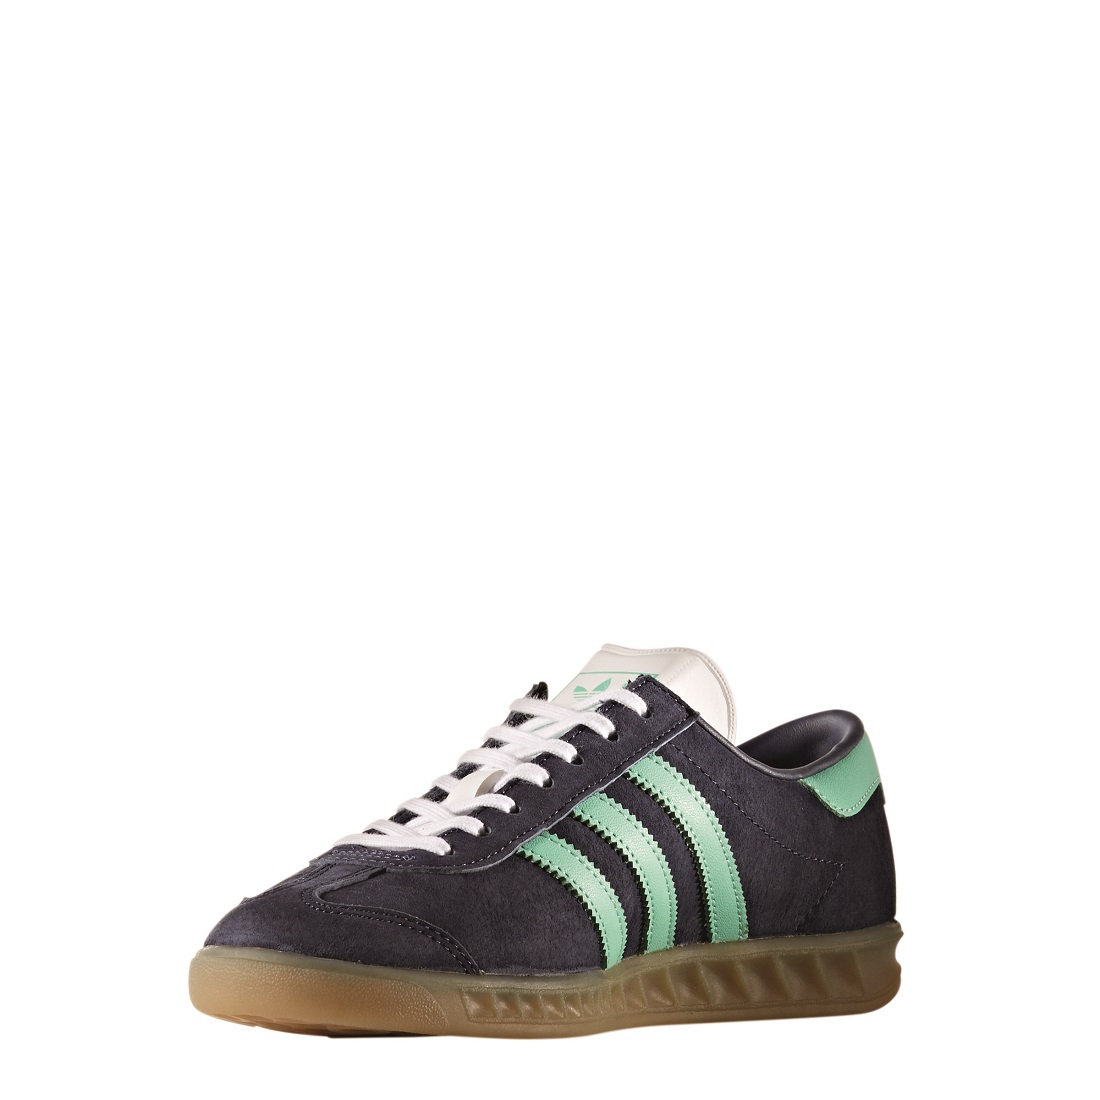 adidas originals hamburg sneaker damen schuhe dunkelgrau mint bb5112 sport klingenmaier. Black Bedroom Furniture Sets. Home Design Ideas